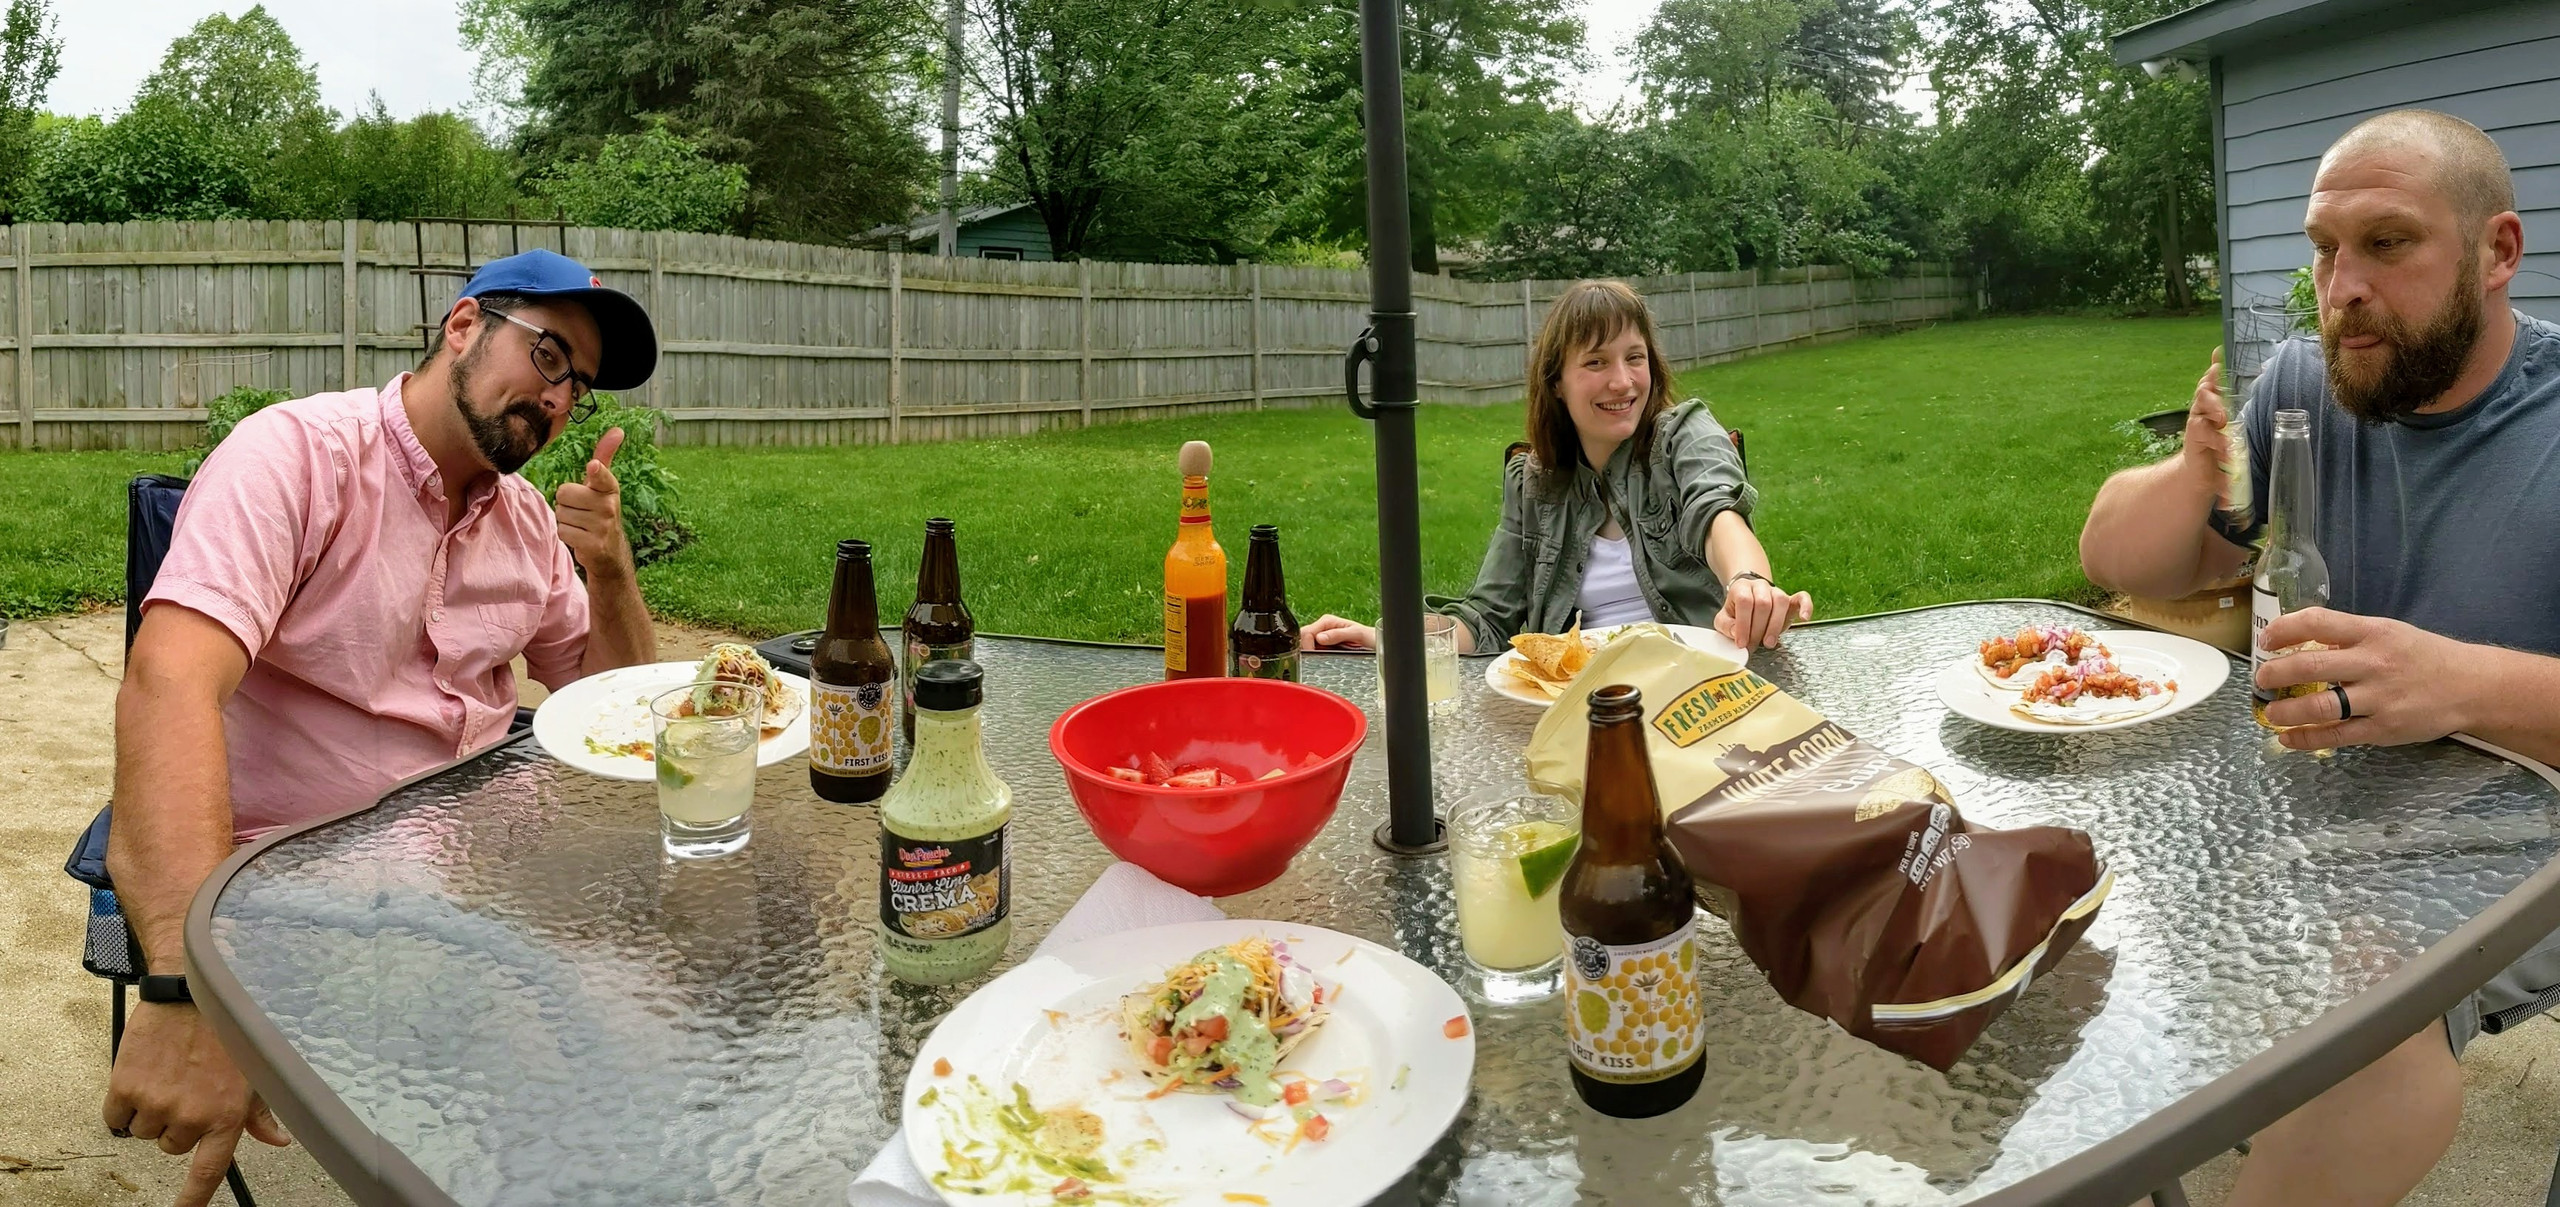 Panorama of friends eating tacos